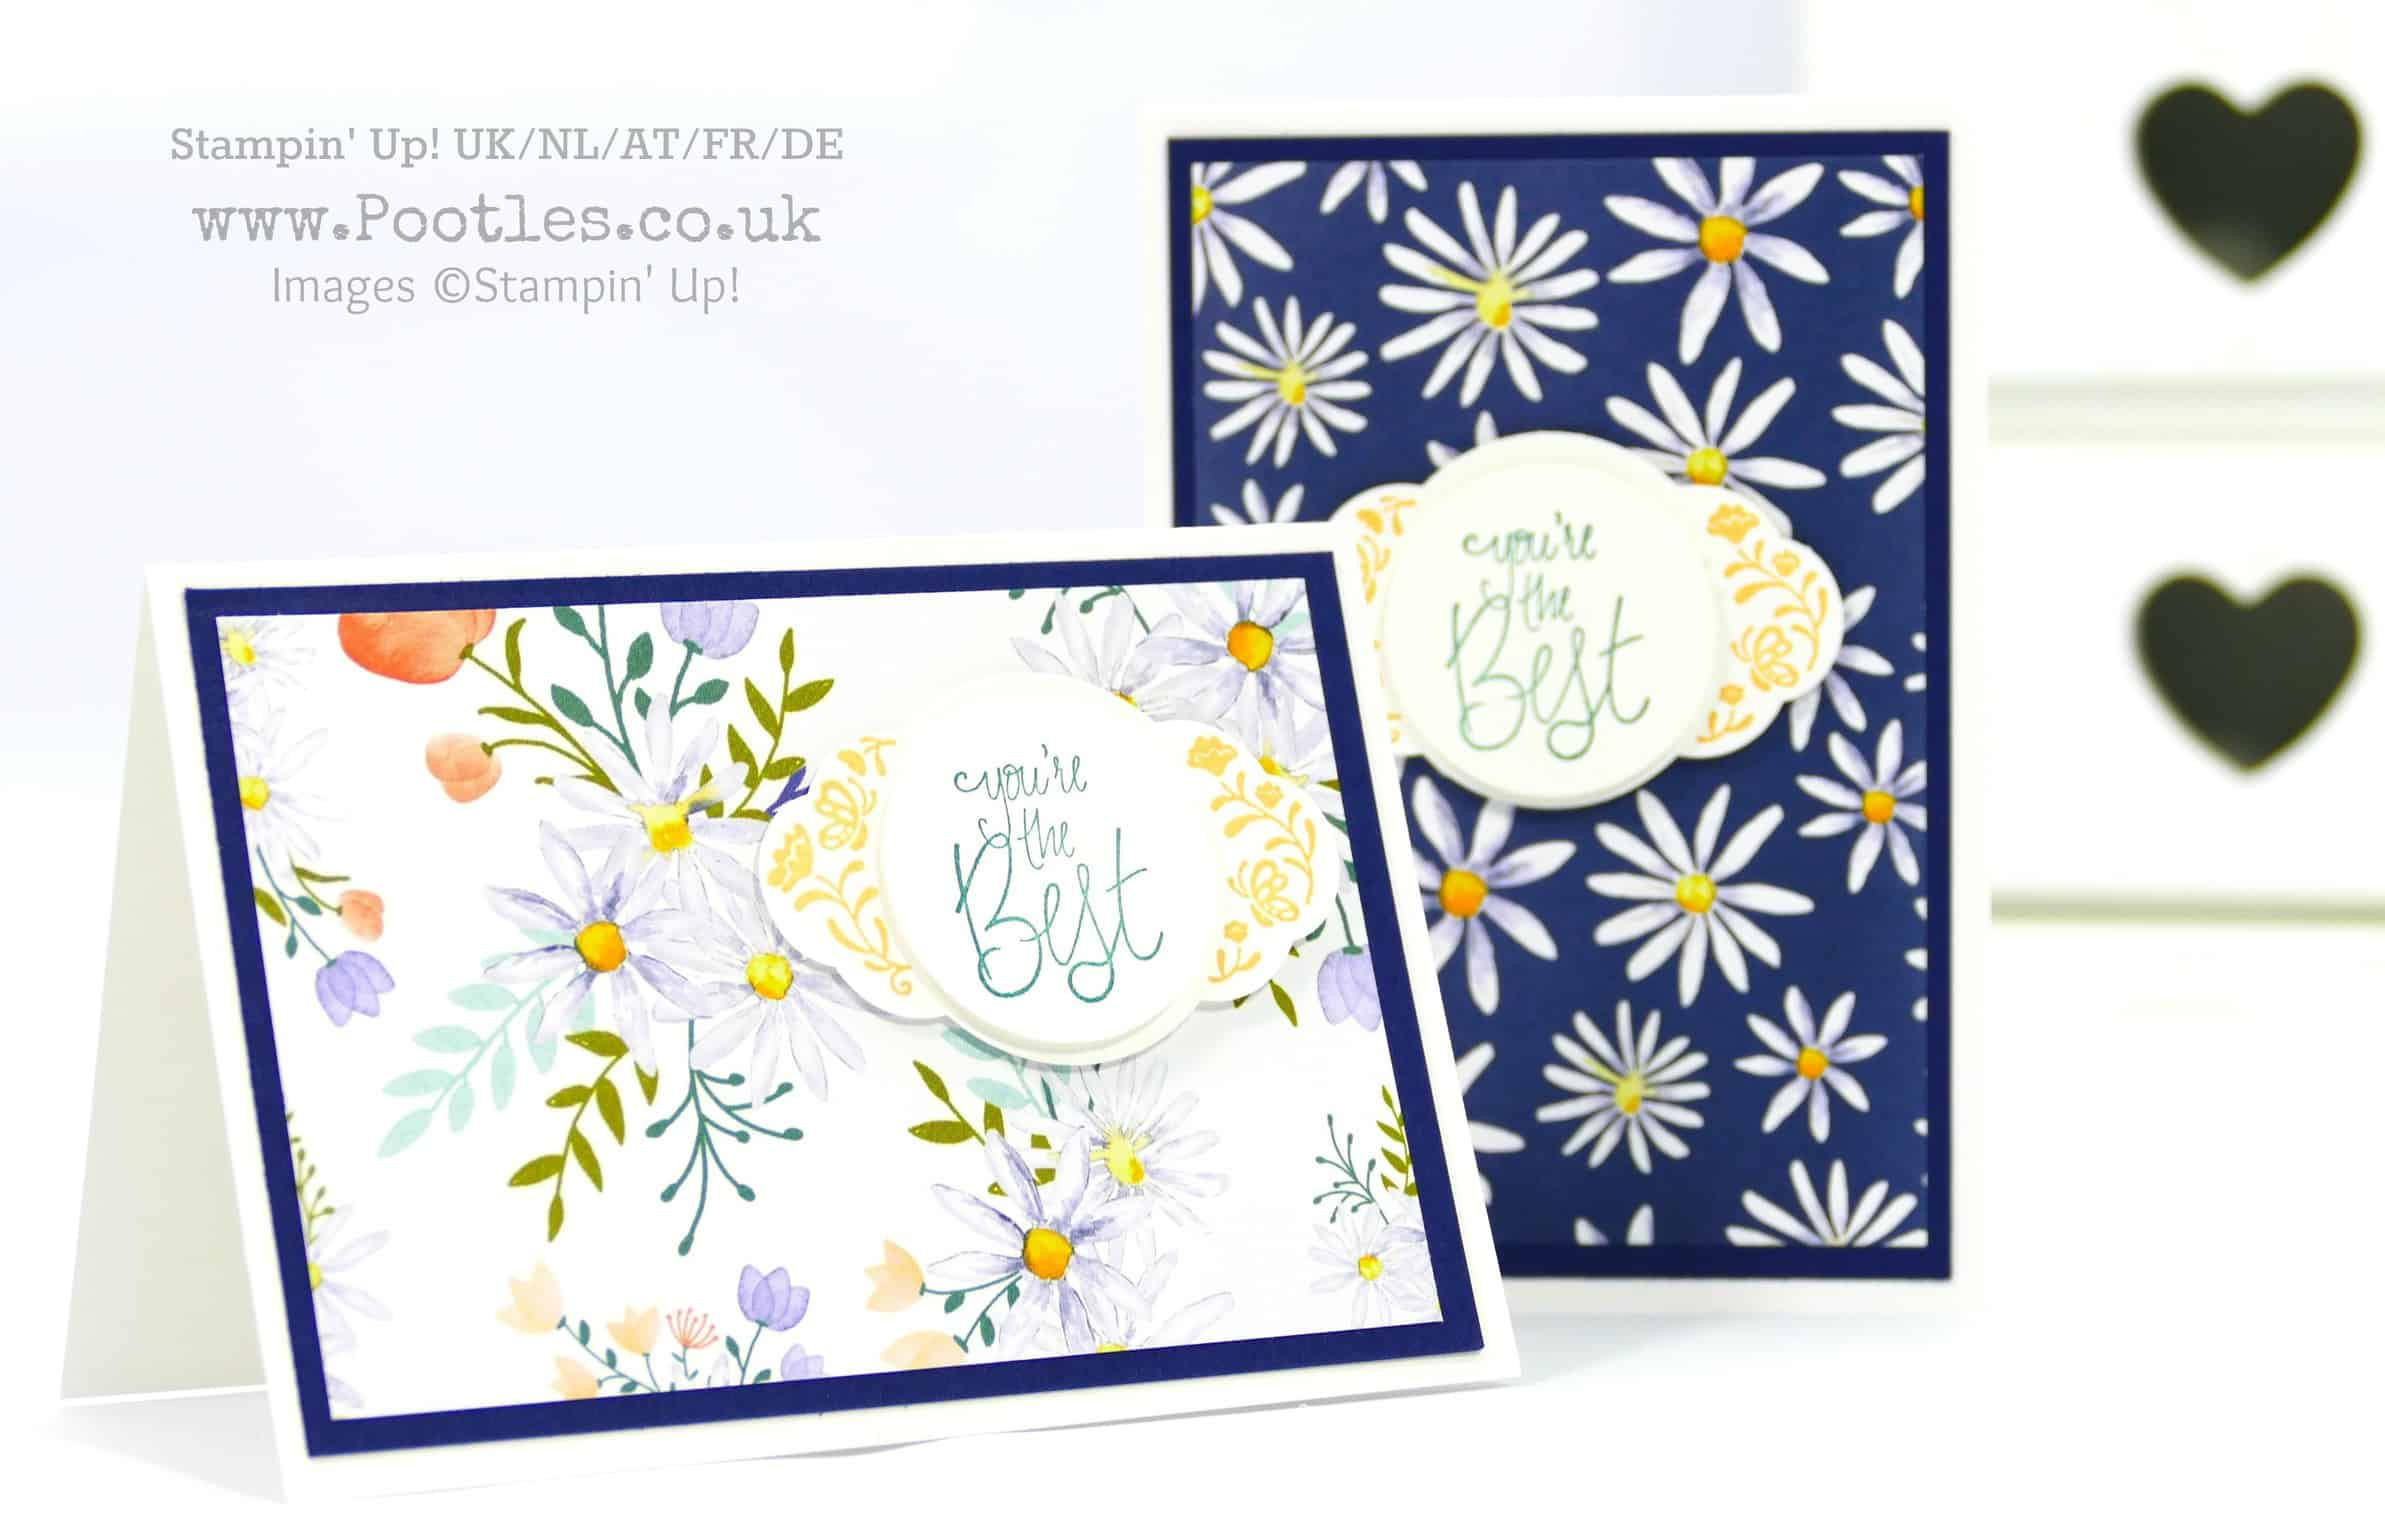 Delightful Daisy + Label Me Pretty Bundle Customer Thank You Cards